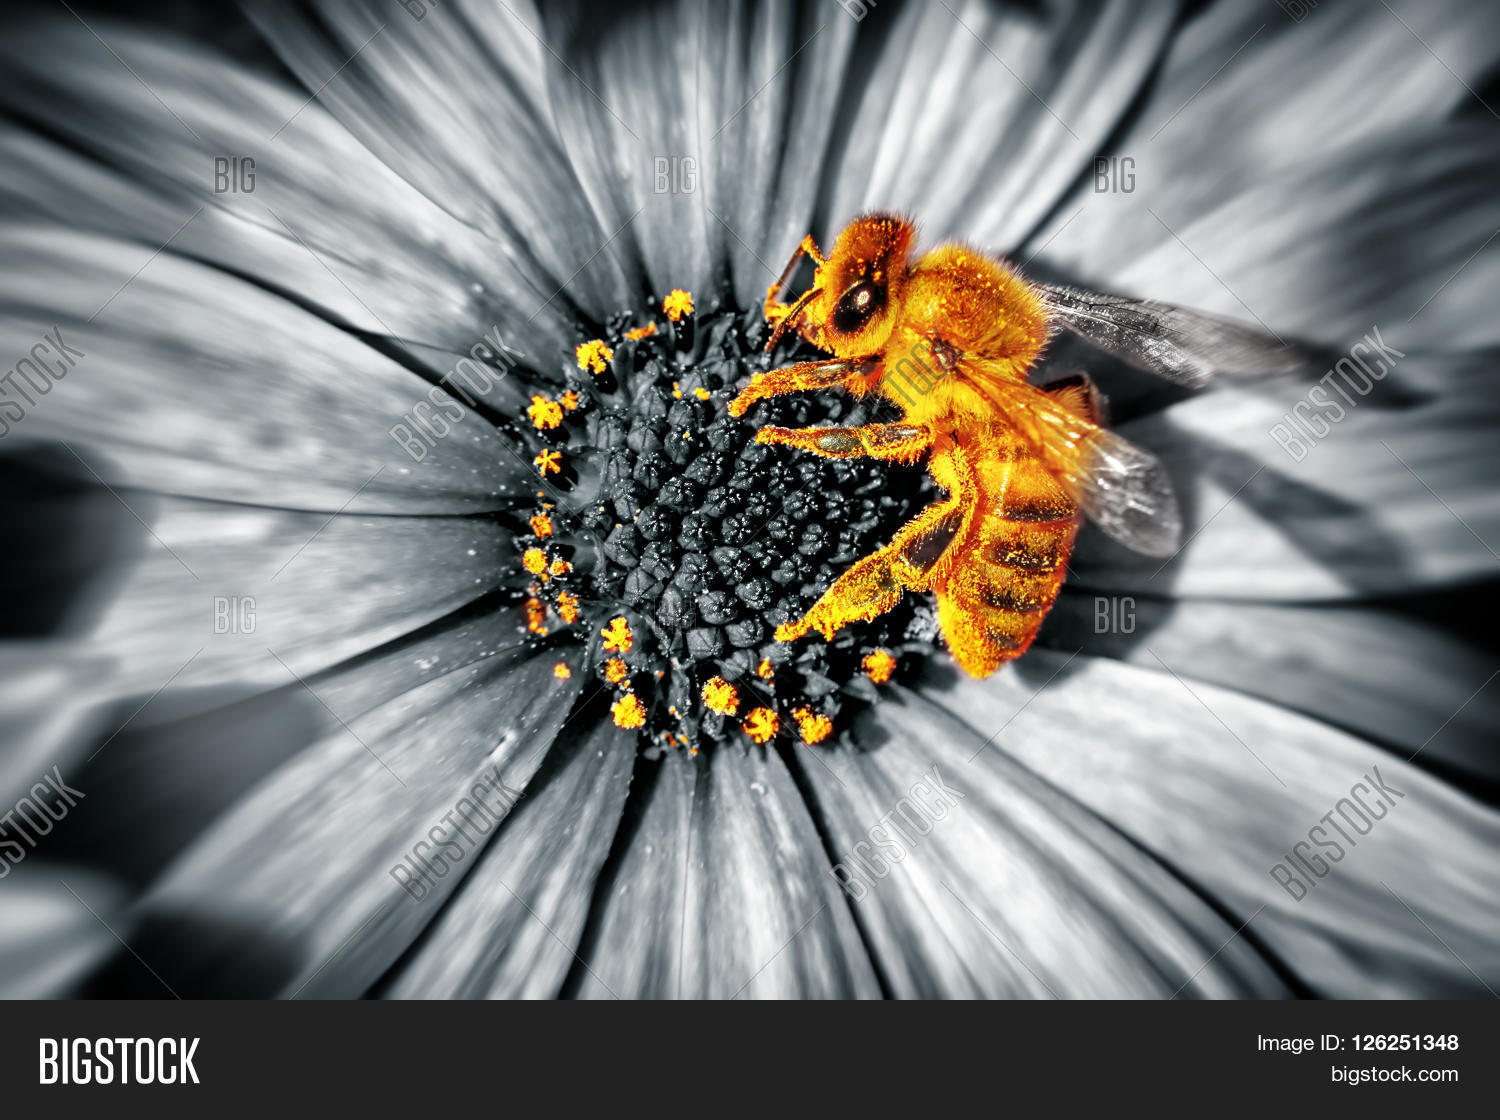 Close Up Photo Of A Cute Little Yellow Bee Sitting On Daisies Flower